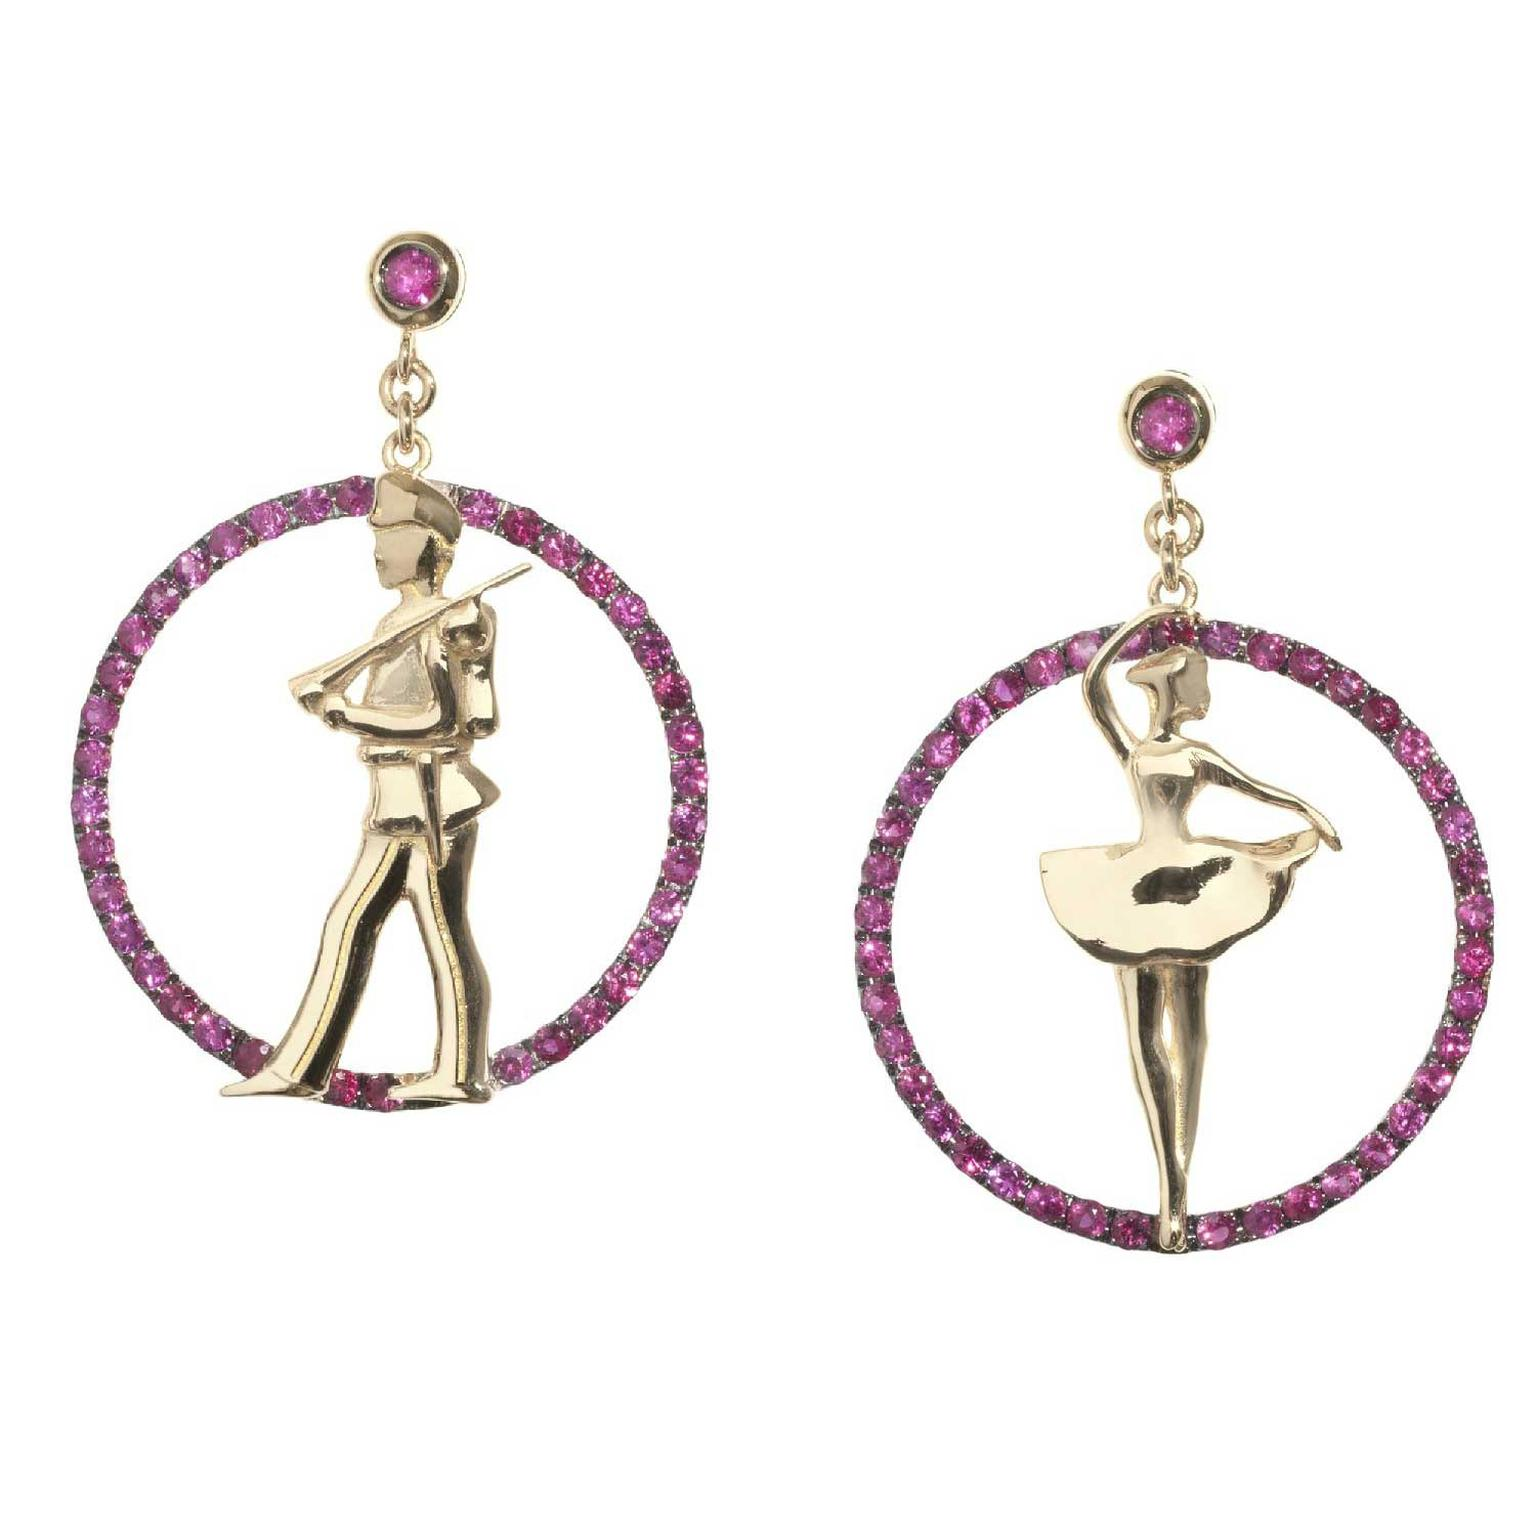 Francesca Villa Joie de Vivre ruby and pink gold earrings